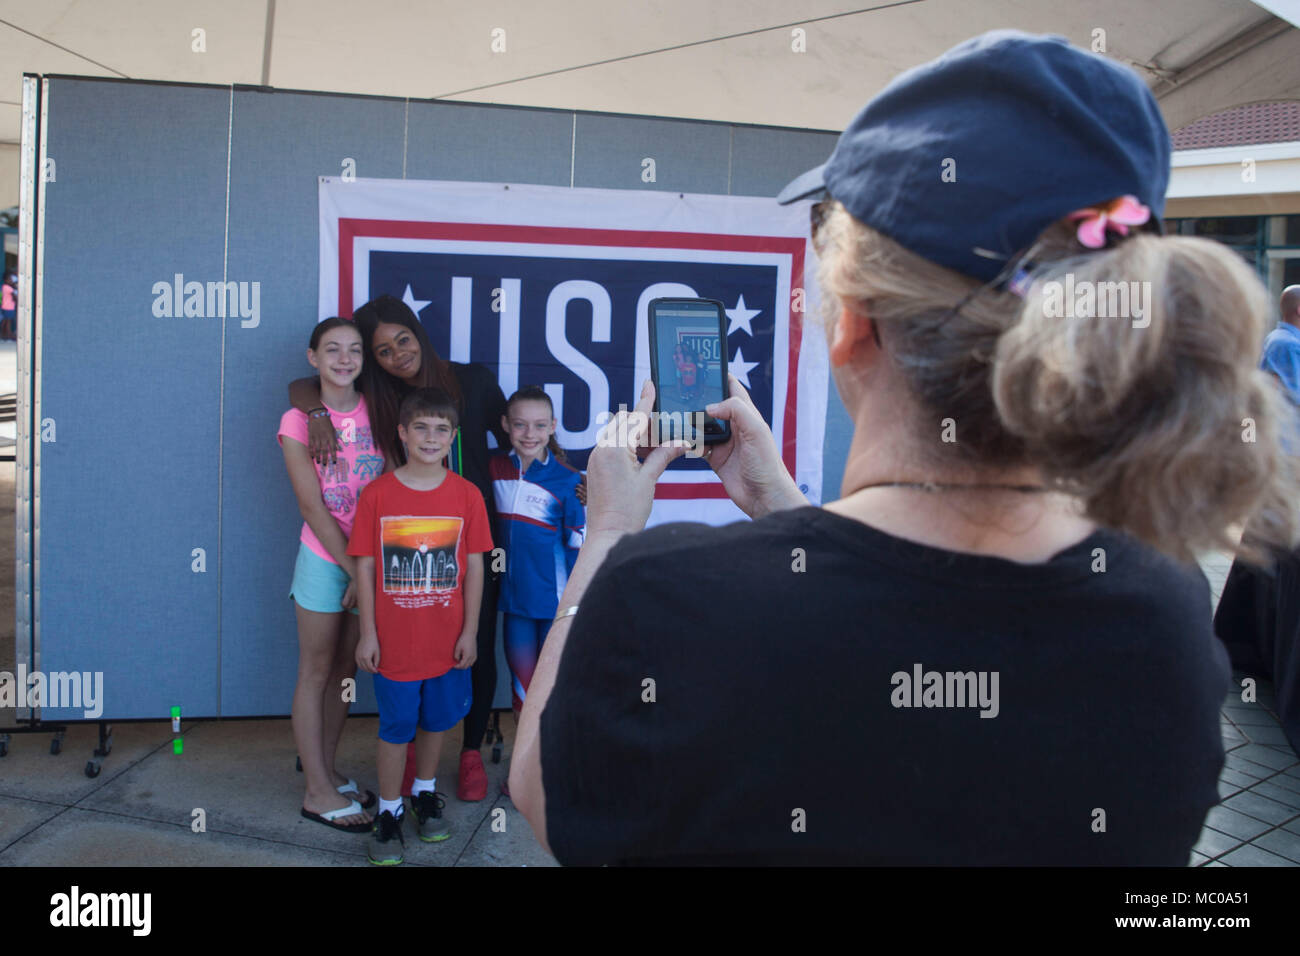 Young fans pose for a photo with gabrielle gabby douglas during a young fans pose for a photo with gabrielle gabby douglas during a united services organization uso meet and greet event at the mokapu mall marine corps m4hsunfo